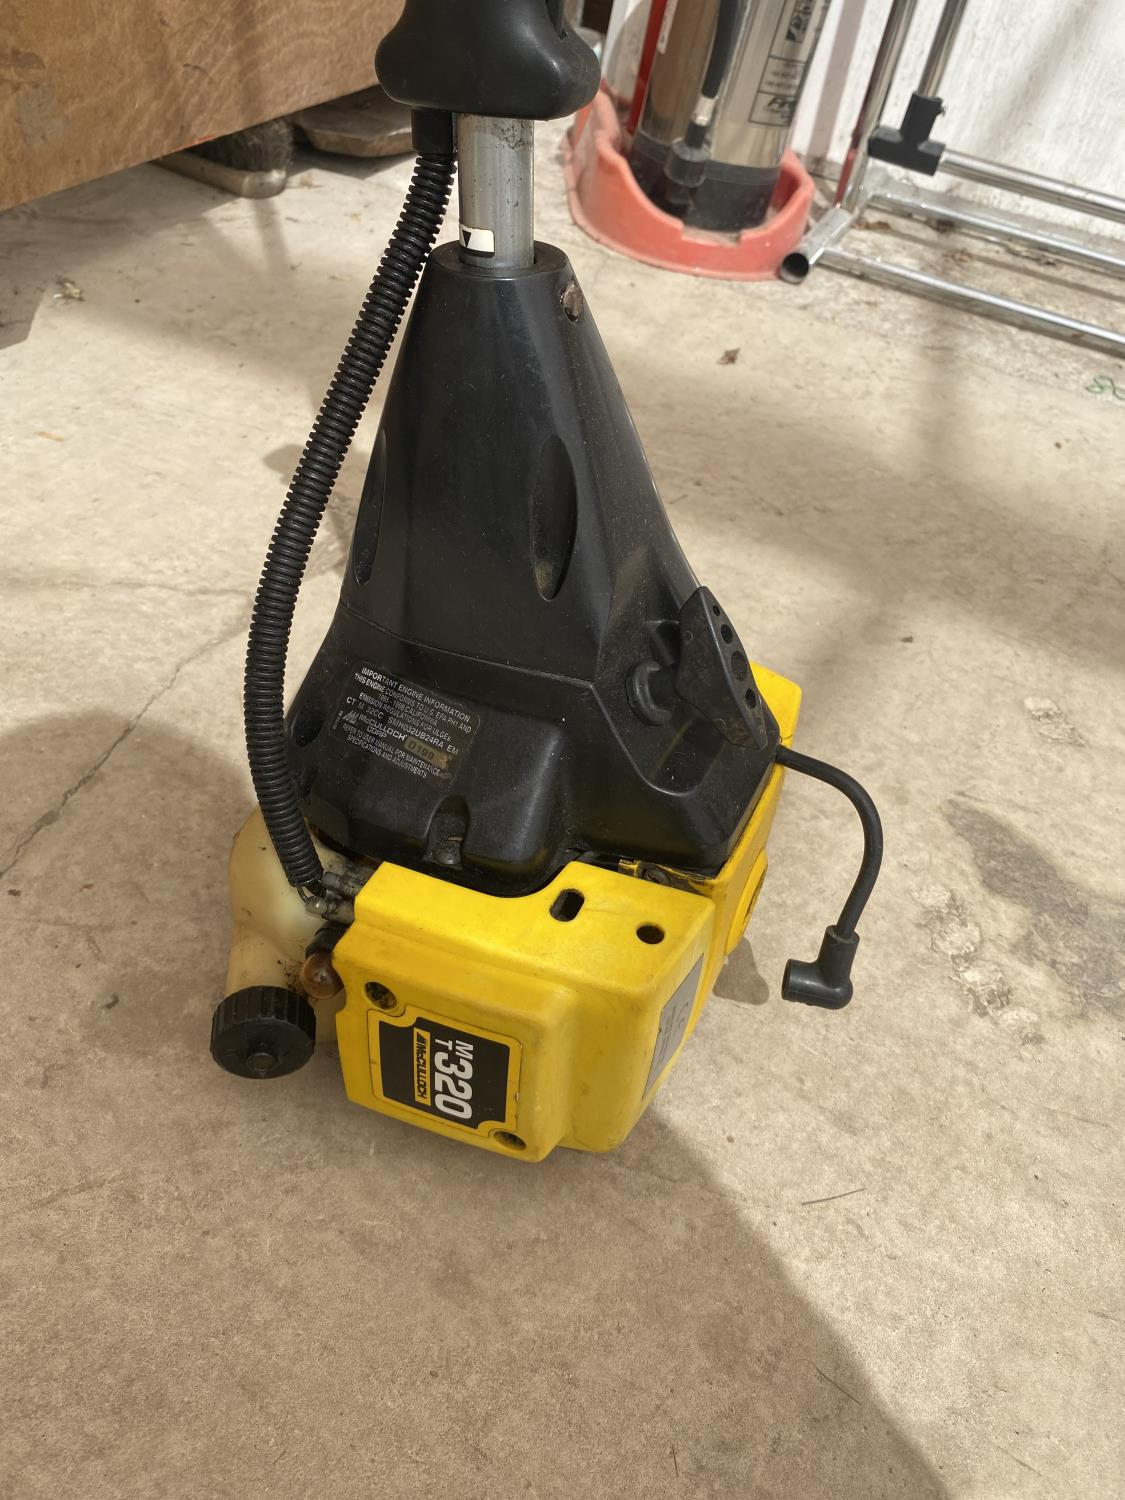 A MCCULLOCH PETROL STRIMMER - Image 4 of 4